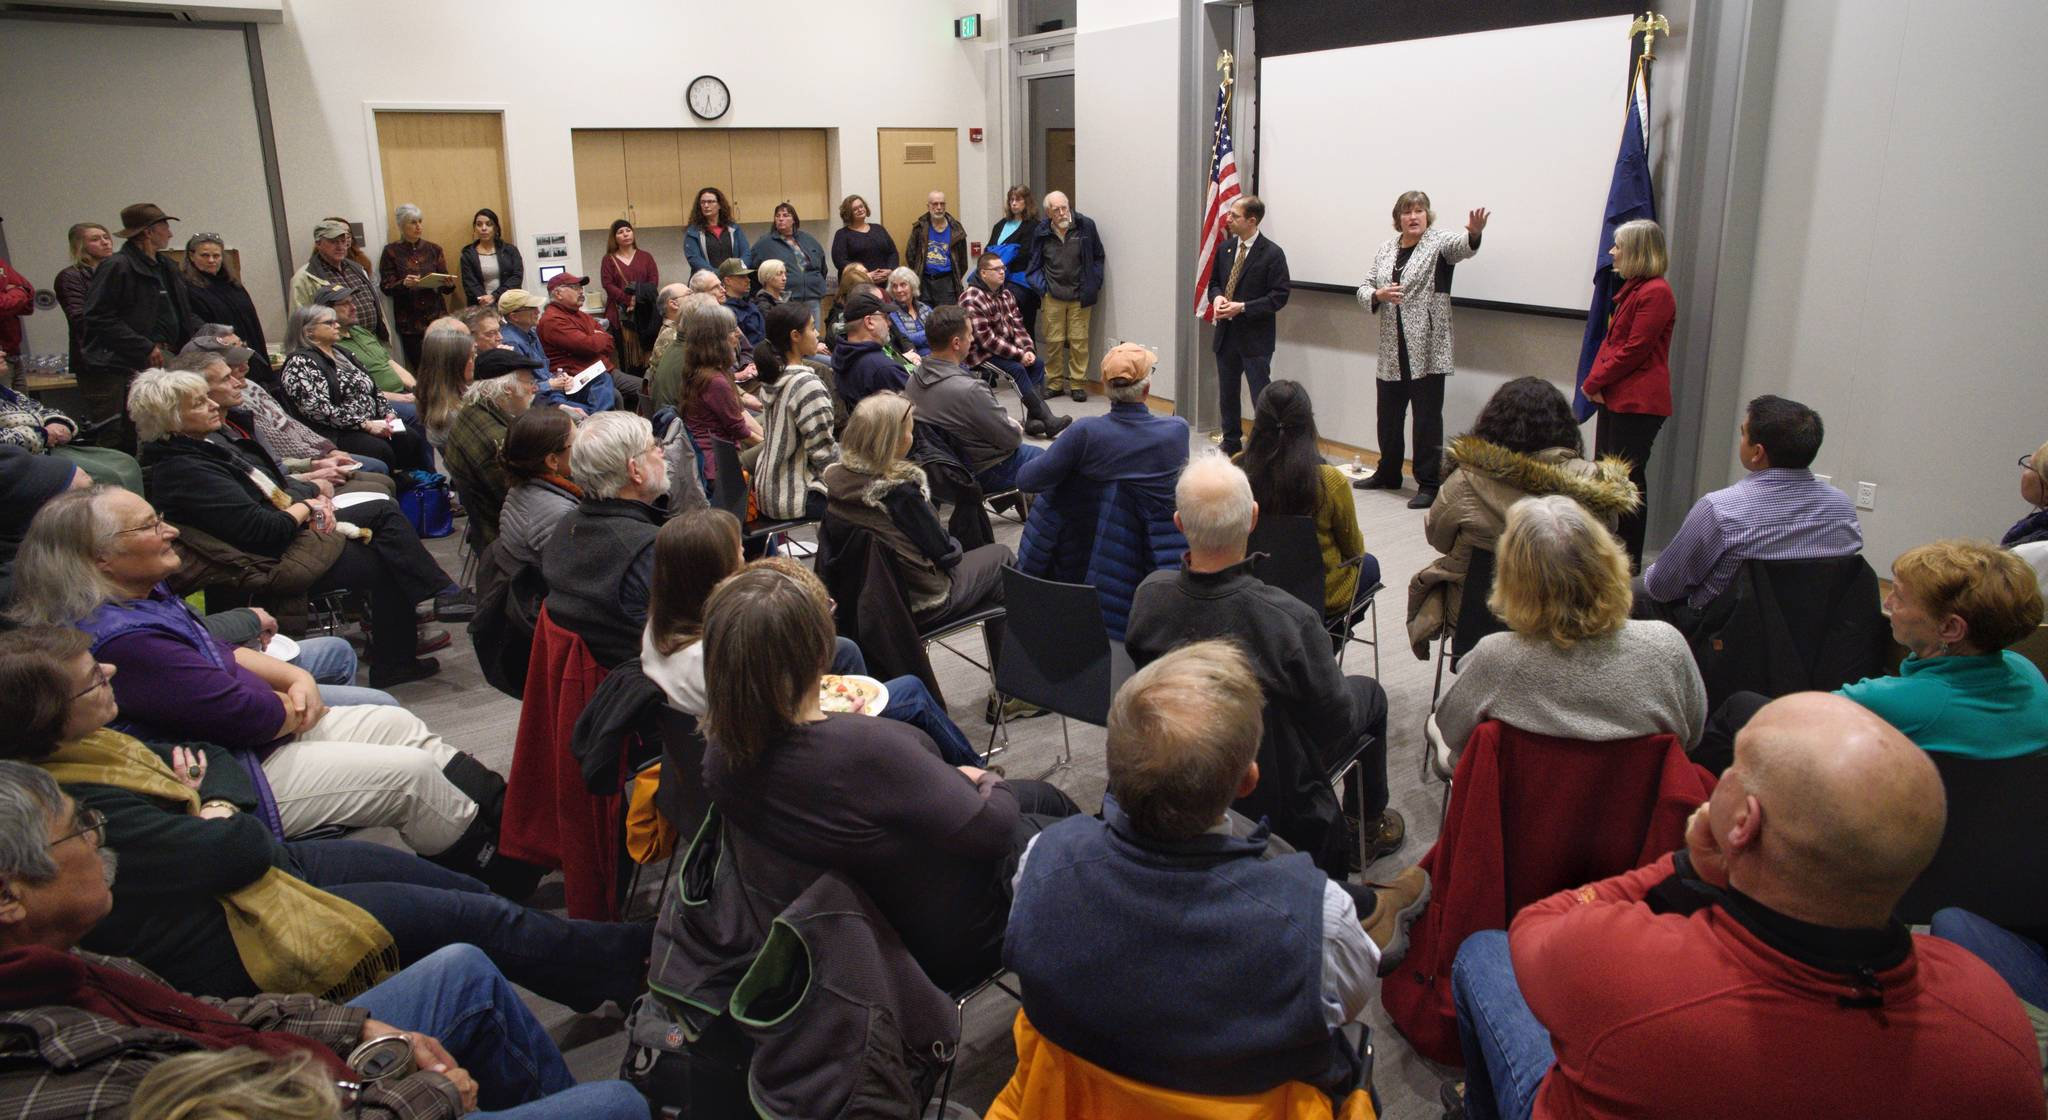 Juneau's legislators, Sen. Jesse Kiehl and Reps. Sara Hannan and Andi Story, talk to a standing room only crowd at a town hall meeting at the Mendenhall Valley Public Library on Tuesday, Jan. 29, 2019. (Michael Penn | Juneau Empire)